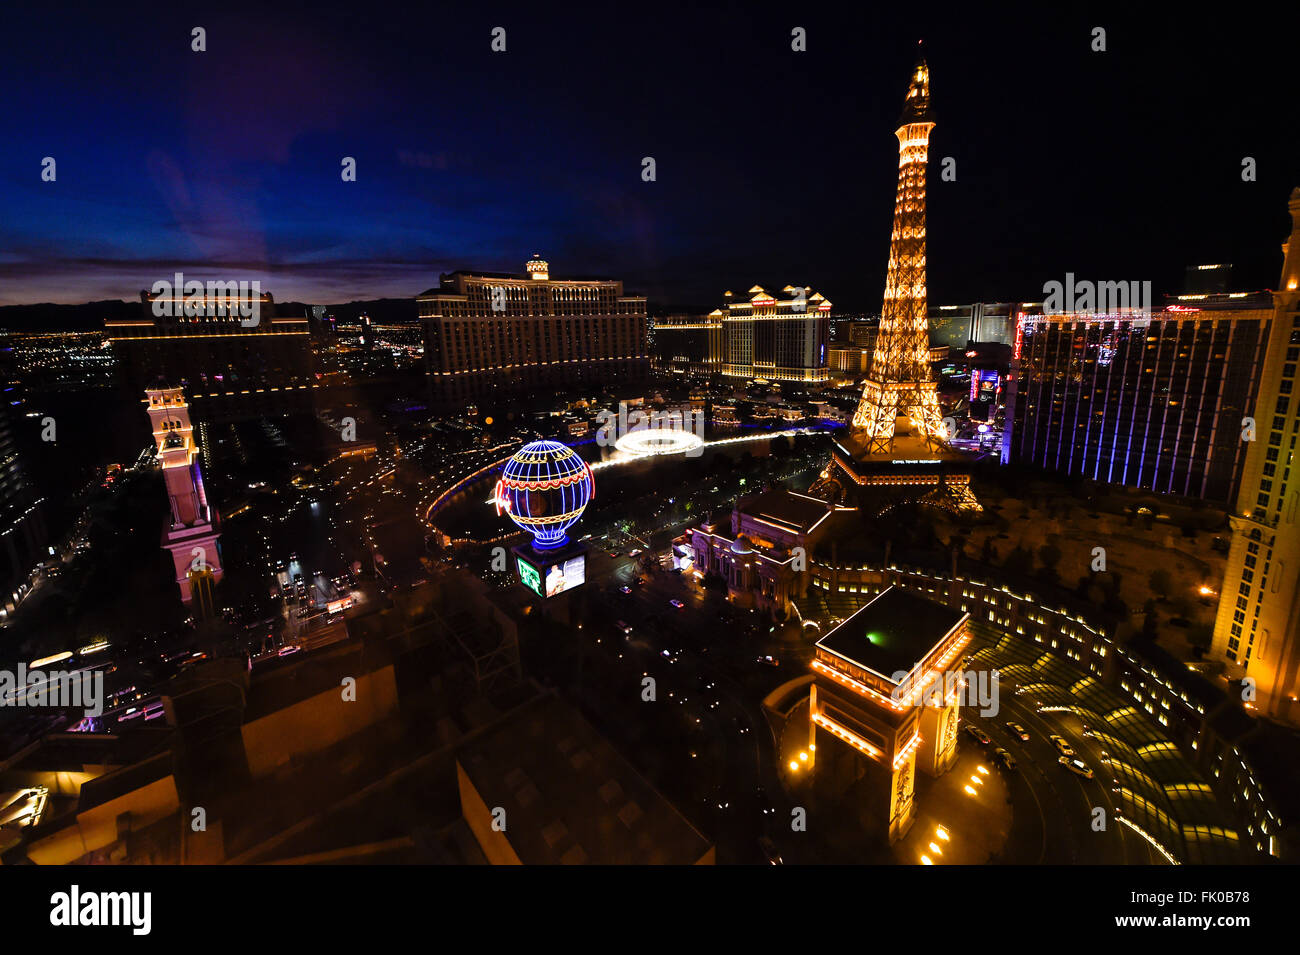 View of Paris Las Vegas and Bellagio Hotel & Casino at night - Stock Image